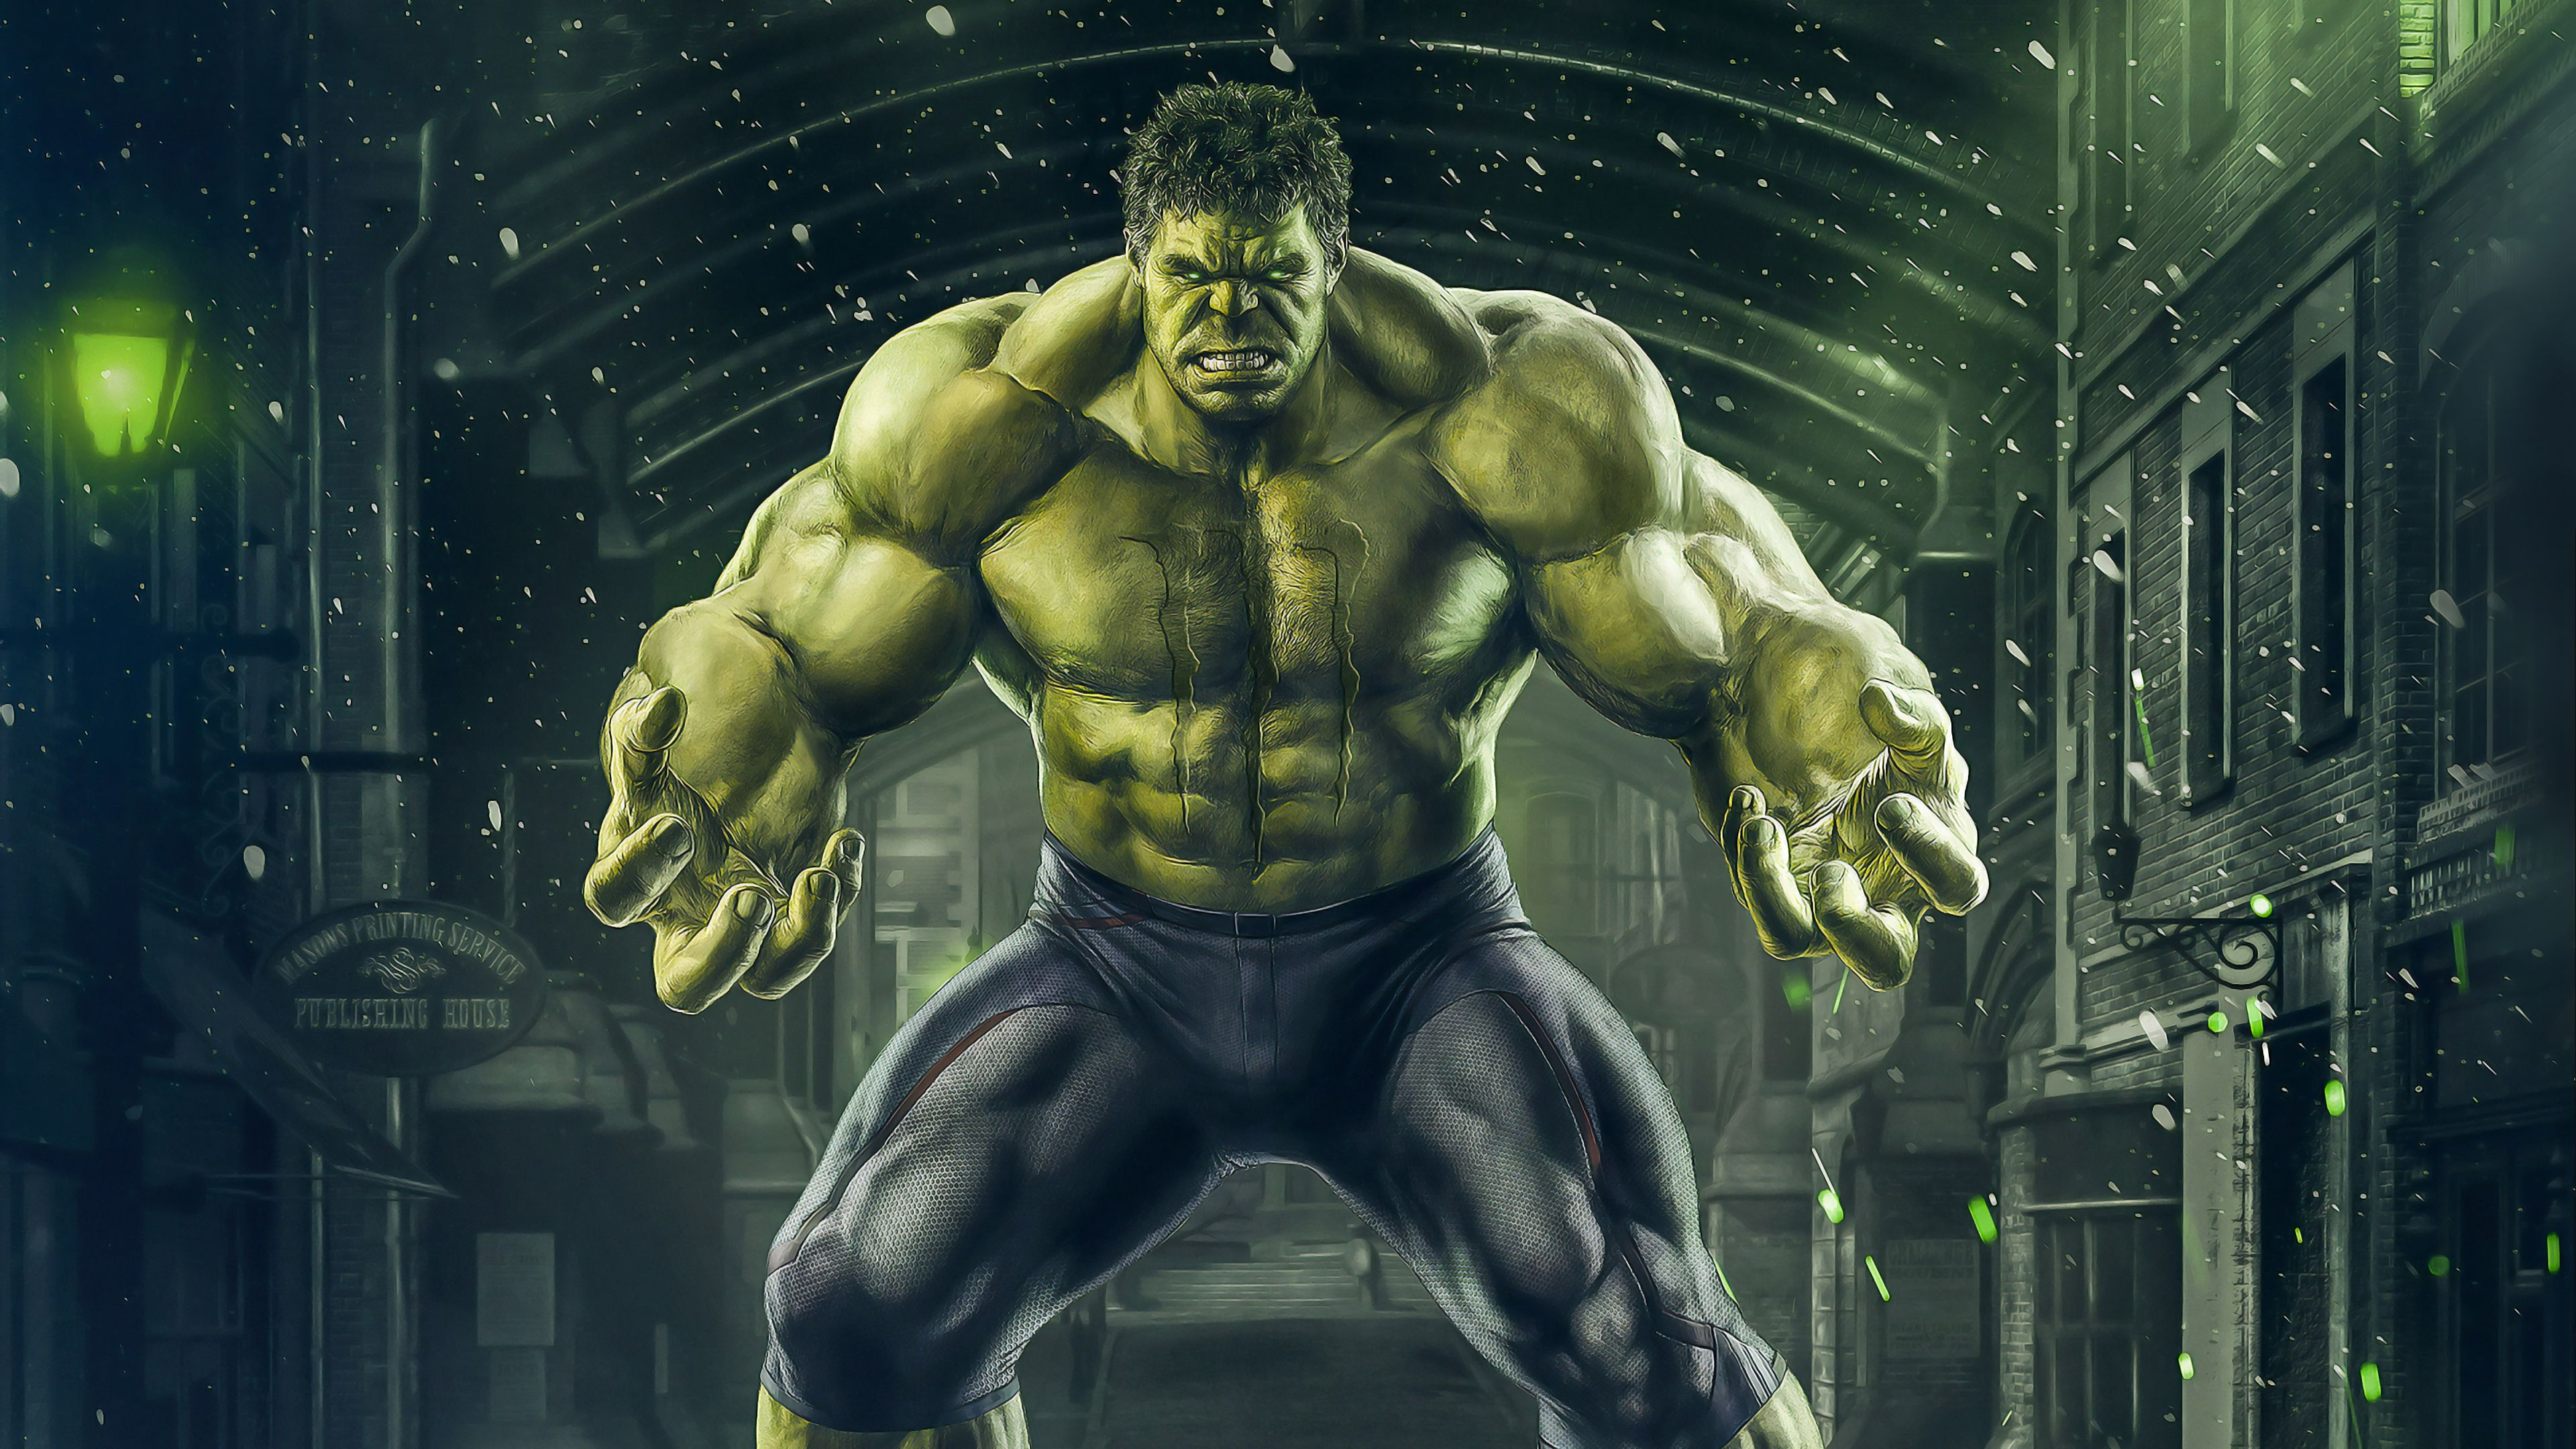 Hulk The Beast 4k Superheroes Wallpapers Hulk Wallpapers Hd Wallpapers Behance Wallpapers 4k Wallpapers In 2020 Superhero Wallpaper Hulk Marvel Wallpaper